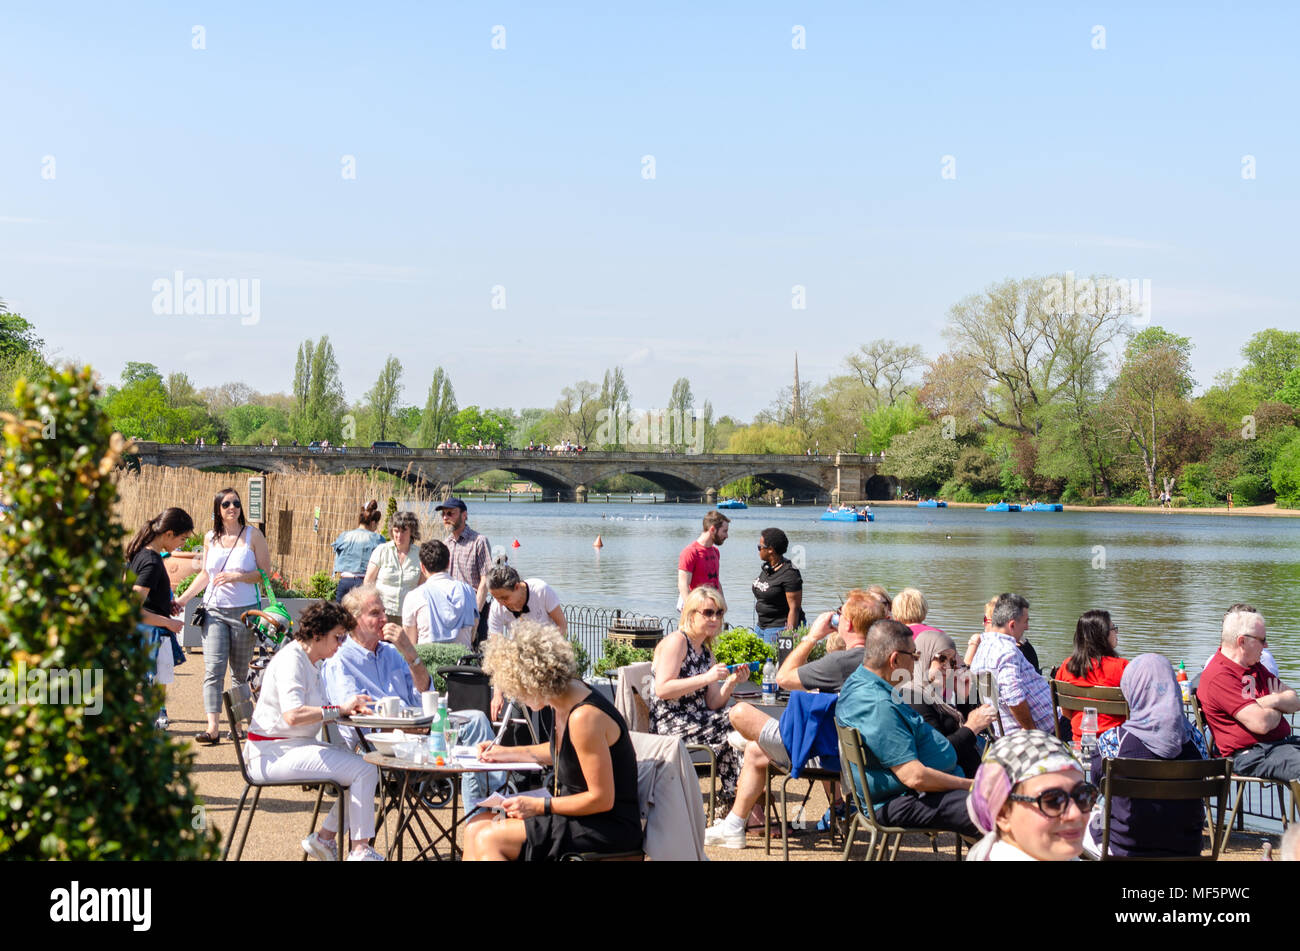 Crowds of people enjoying the spring sunshine at by the Serpentine at Hyde Park, London - Stock Image